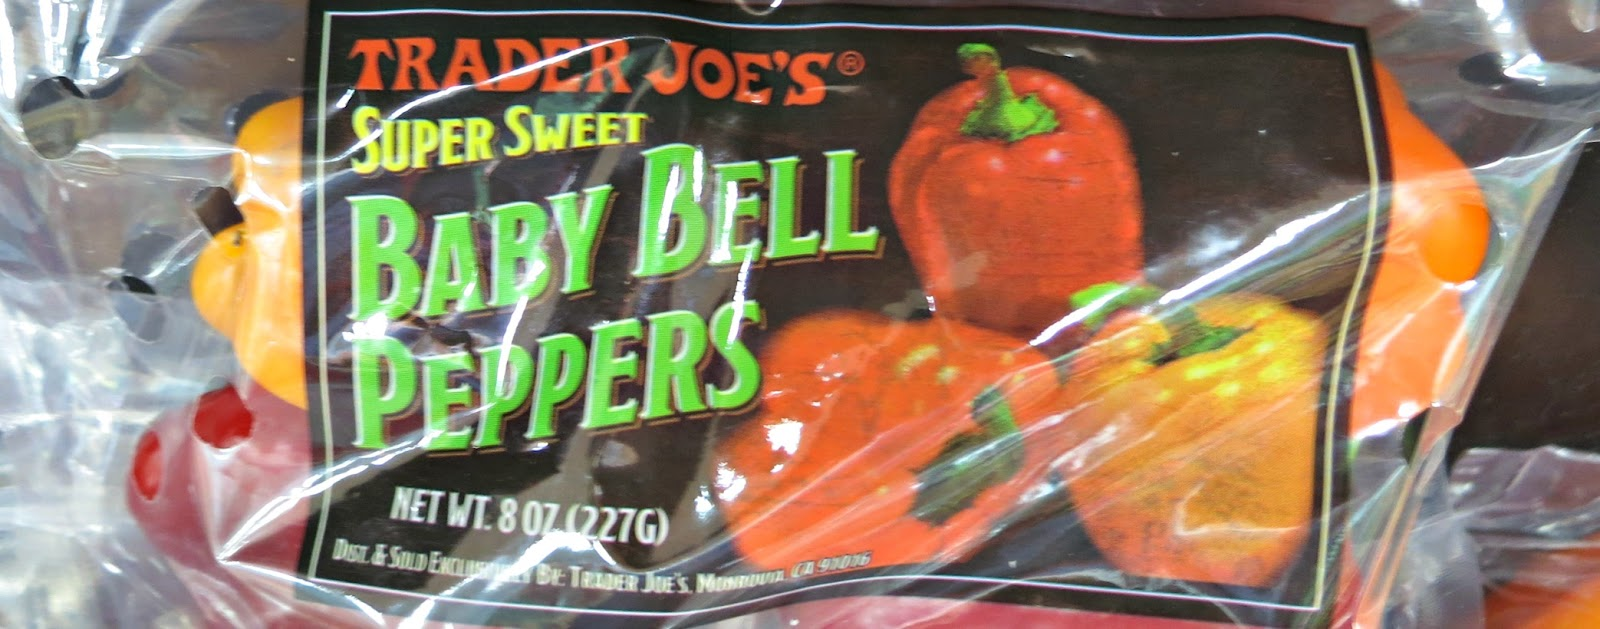 Forum on this topic: How to Grow Mini Peppers from Seed, how-to-grow-mini-peppers-from-seed/